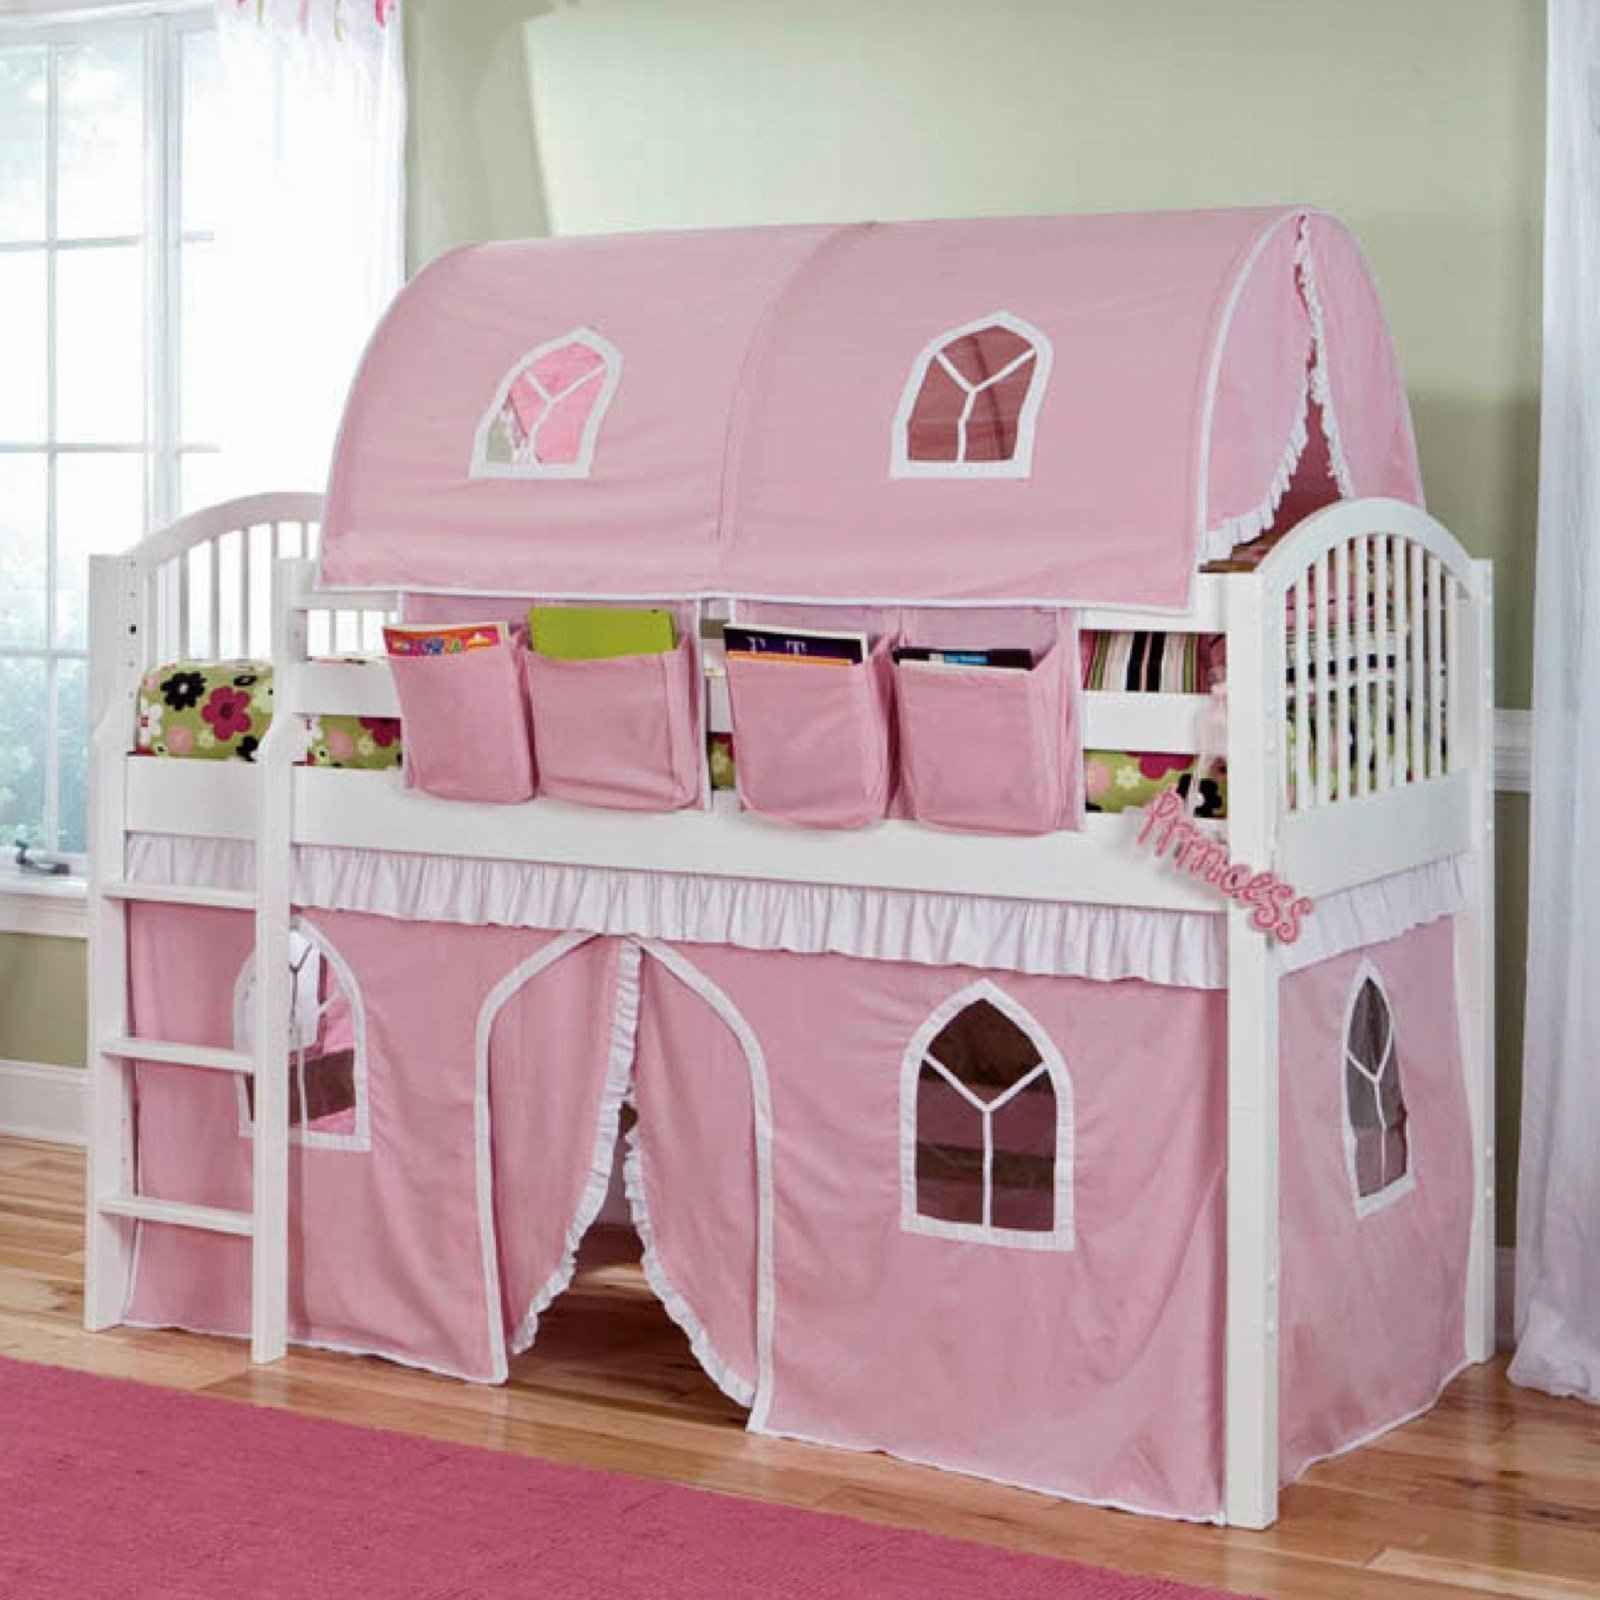 50+ White Toddler Bed With Canopy  Master Bedroom Furniture